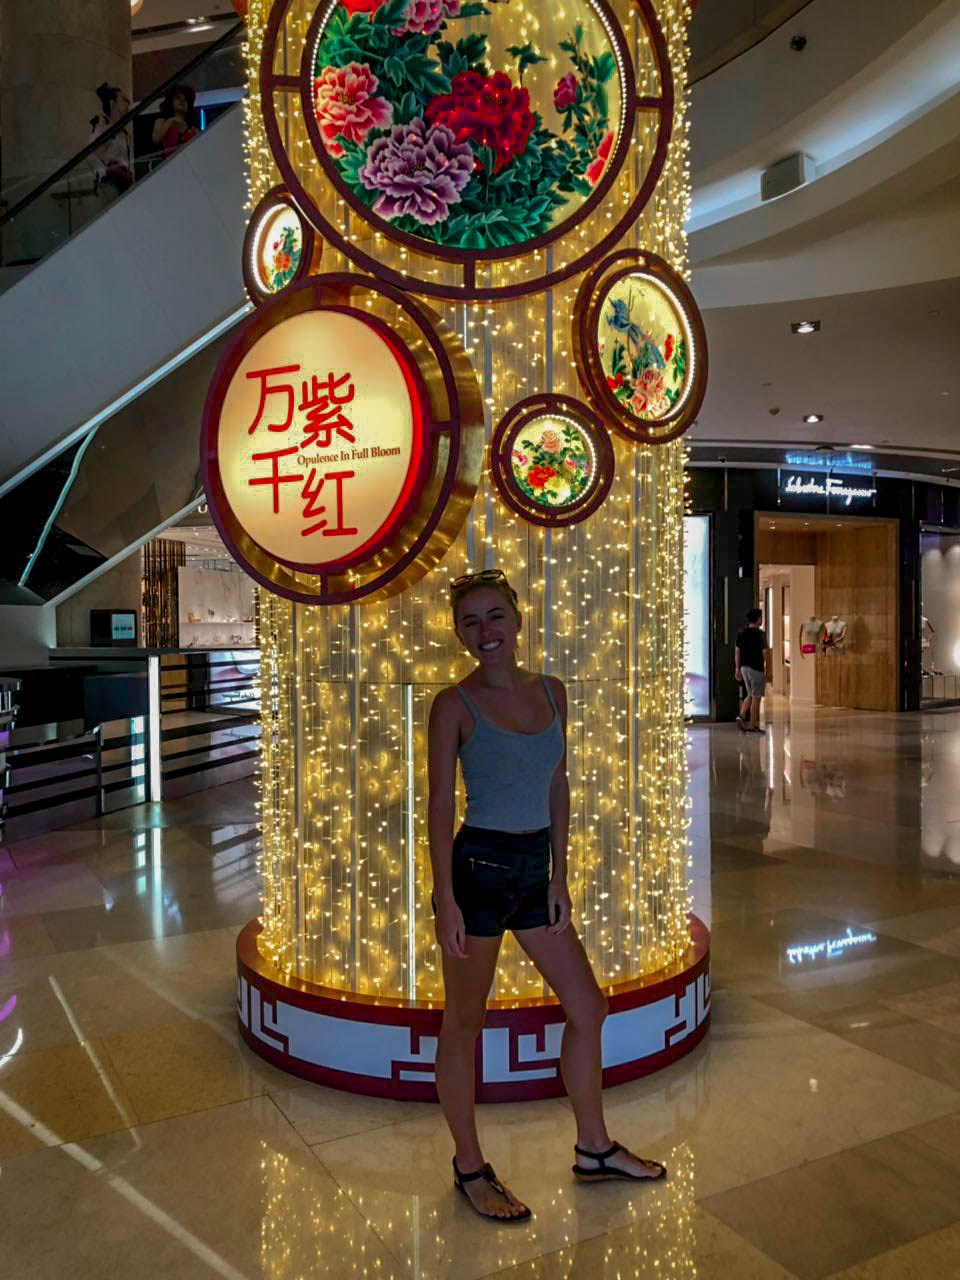 Orchard mall is one of many shopping malls that has every designer label imaginable. Victoria was in her element!